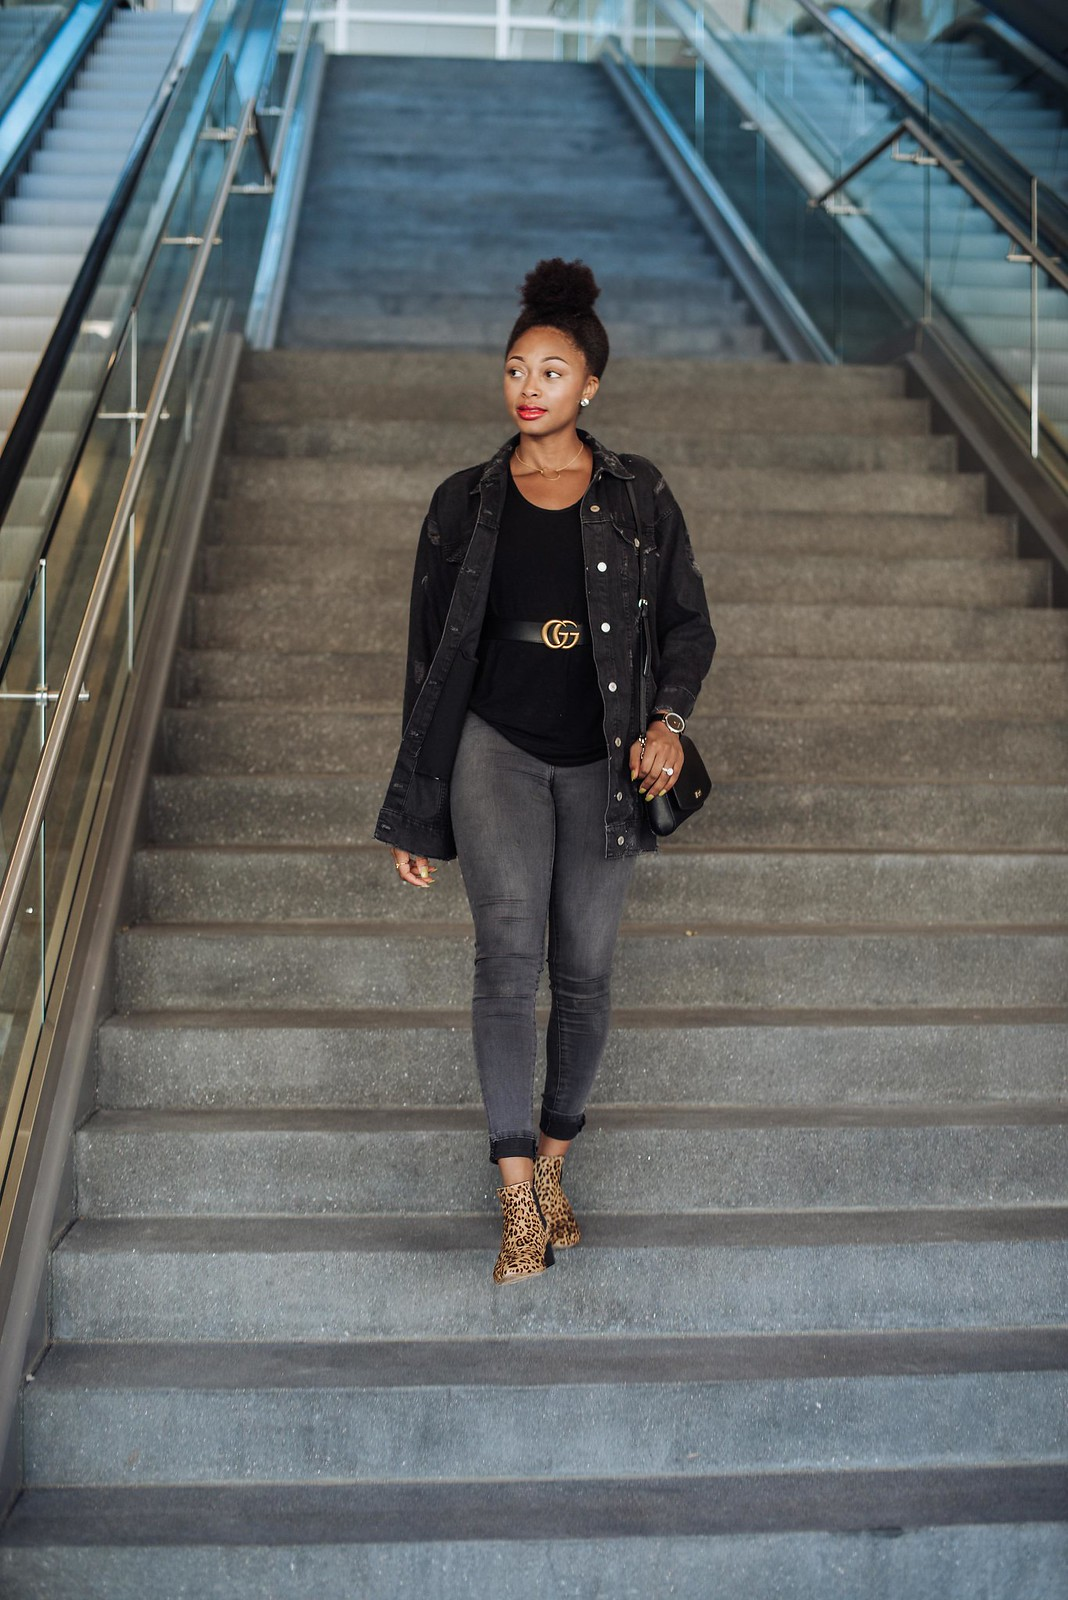 how to style a top knot with natural hair